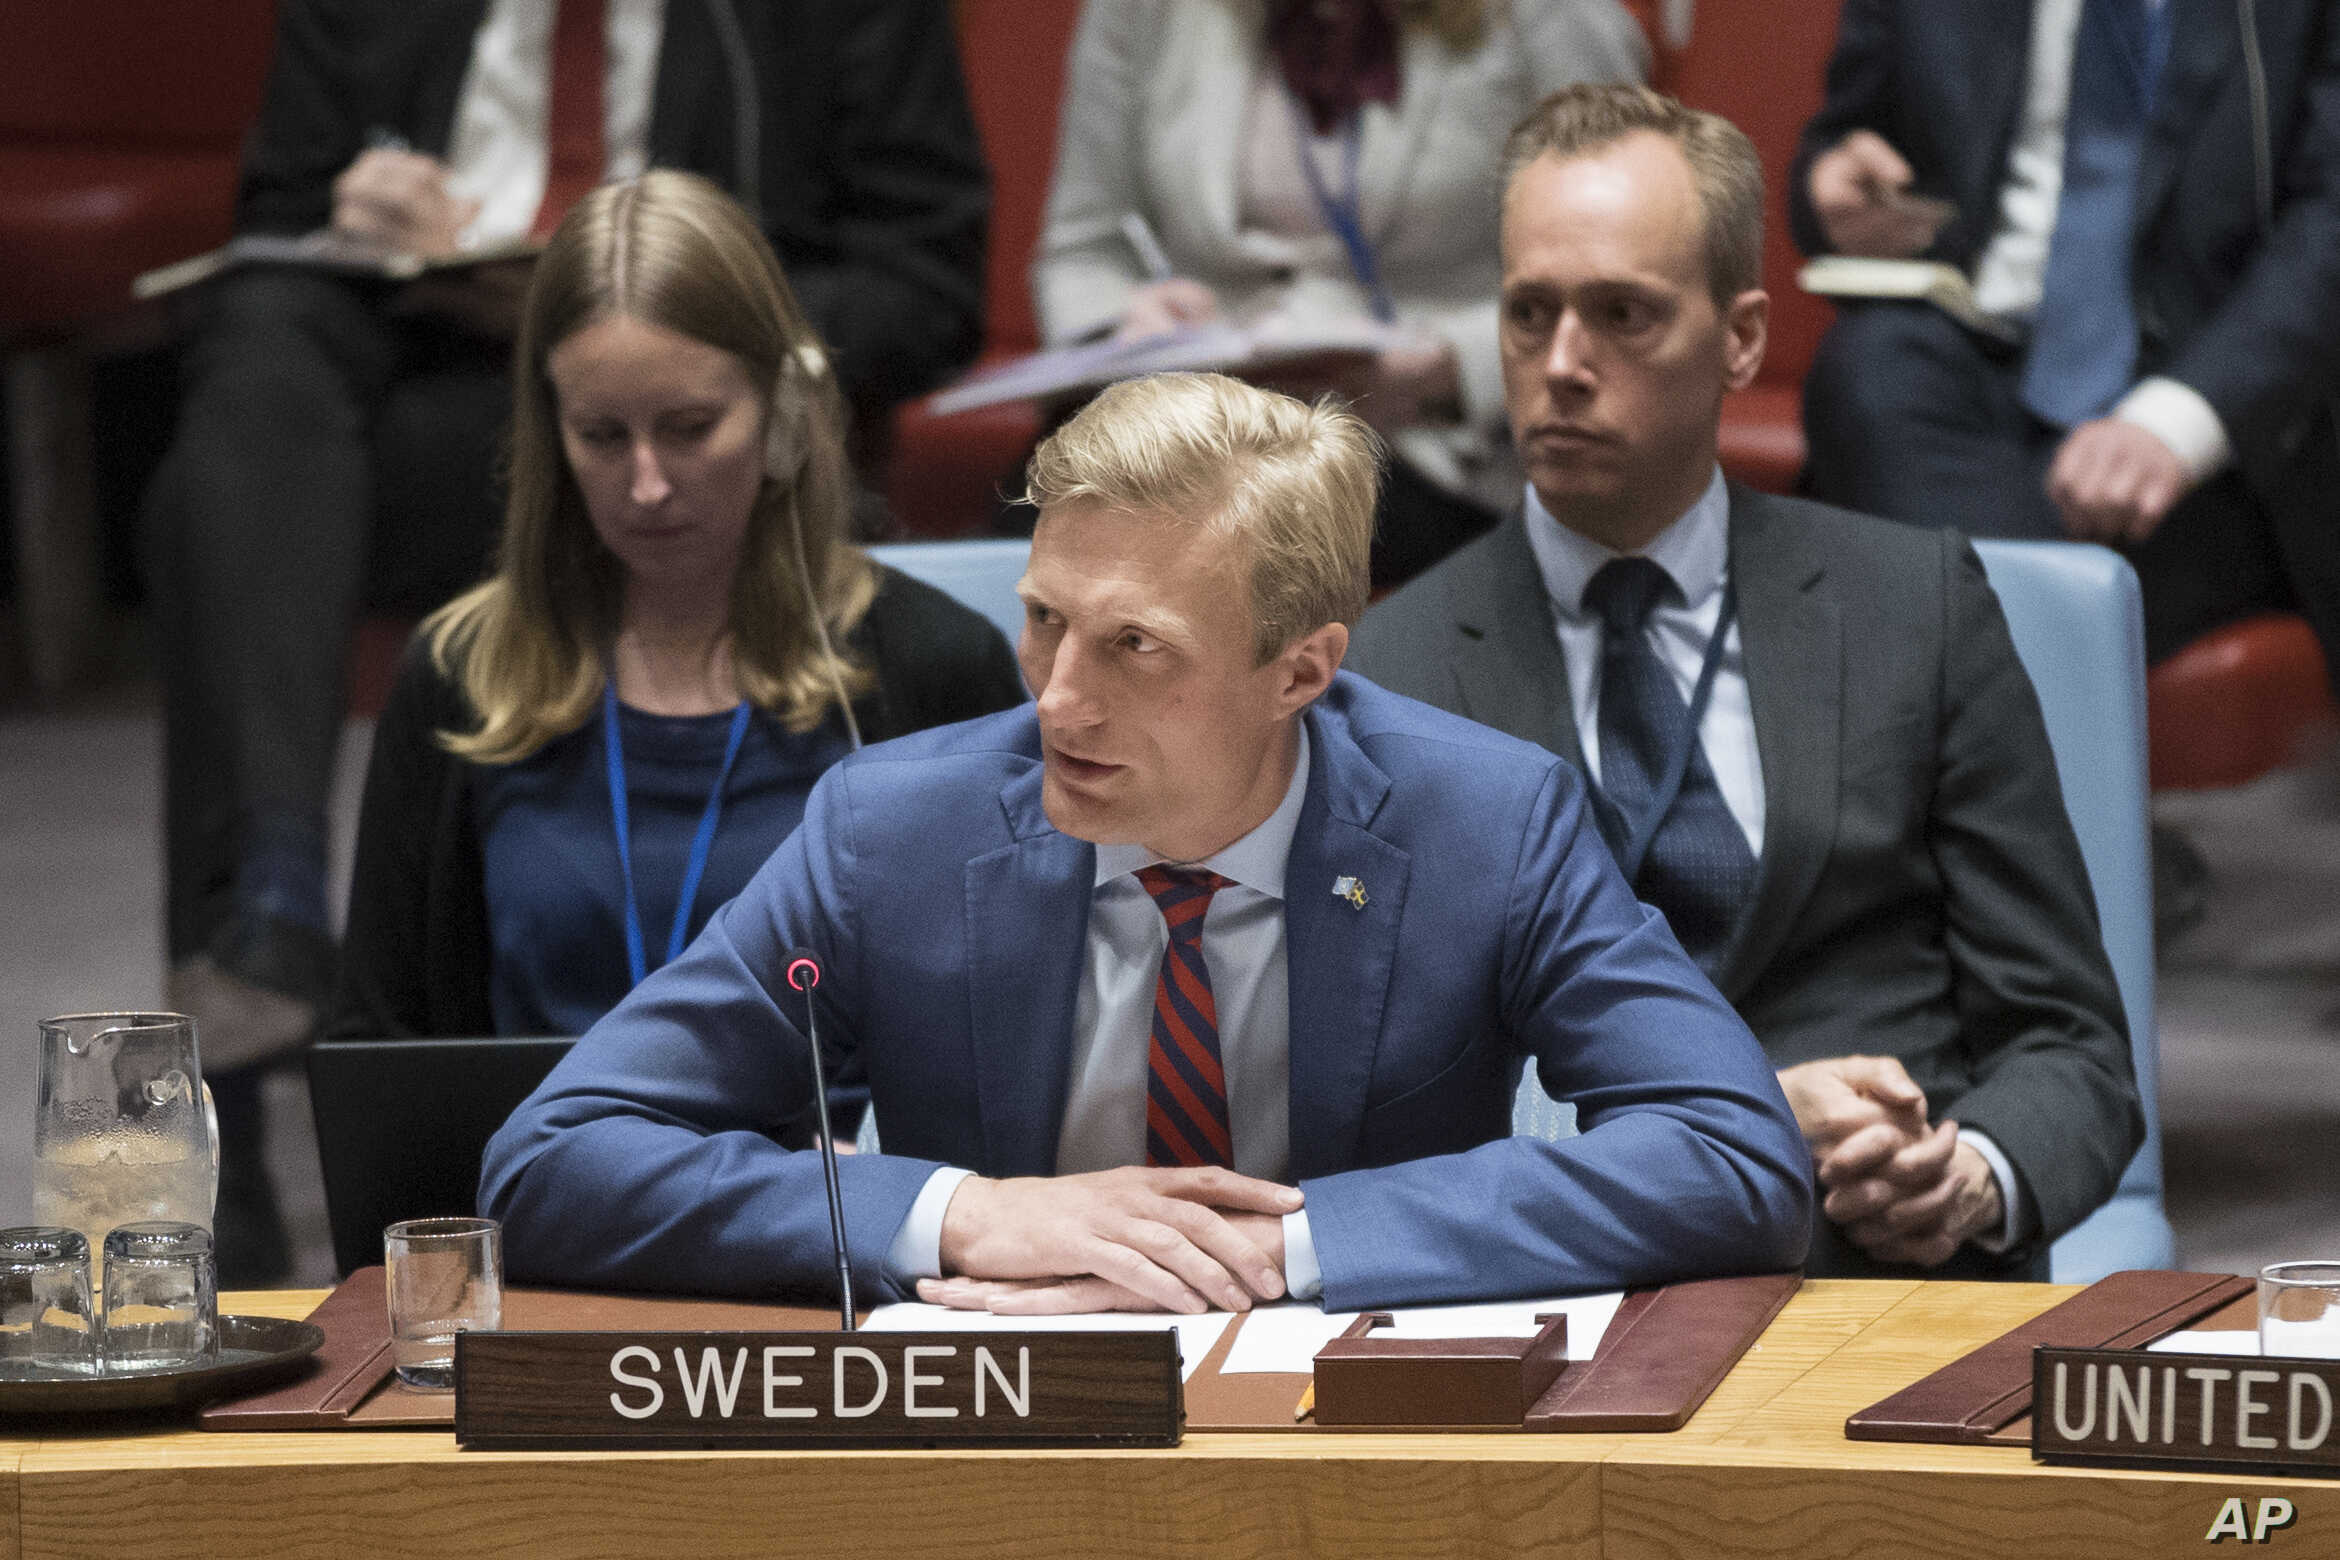 Swedish Ambassador Carl Skau speaks during an emergency Security Council meeting on the situation in Gaza, March 30, 2018, at United Nations headquarters.